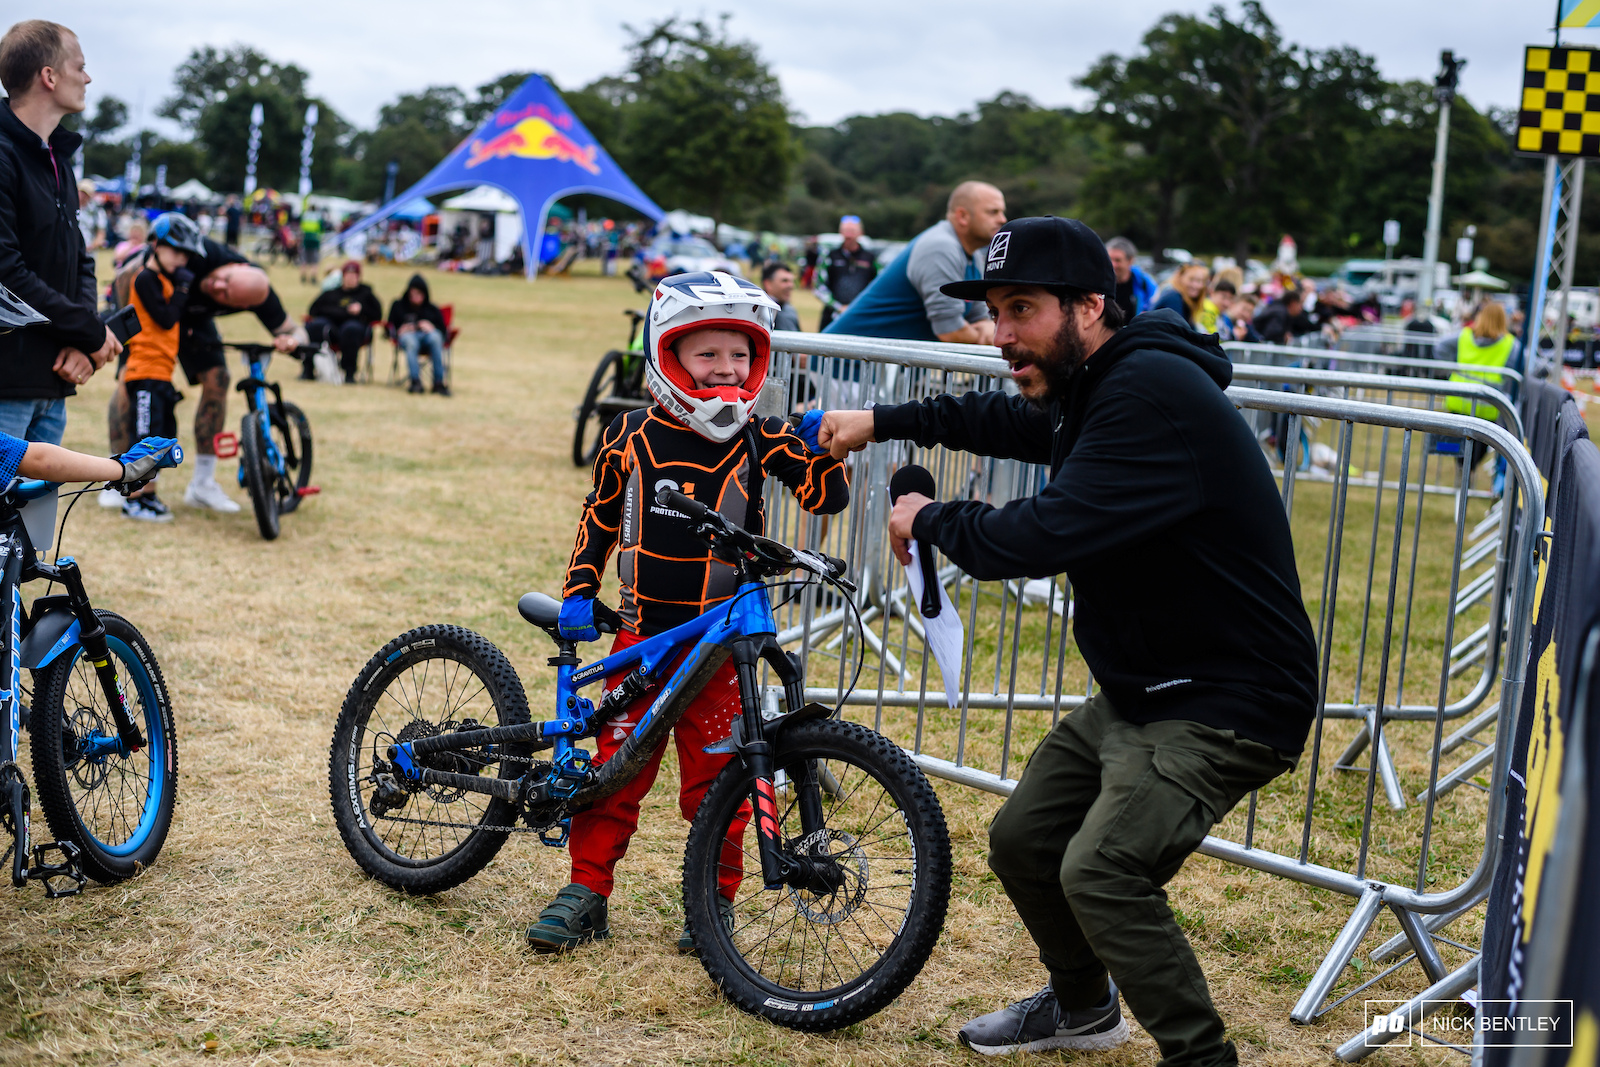 Fist bumps from Matt the Commentator for riders the atmosphere was so good for families at The Malverns Classic